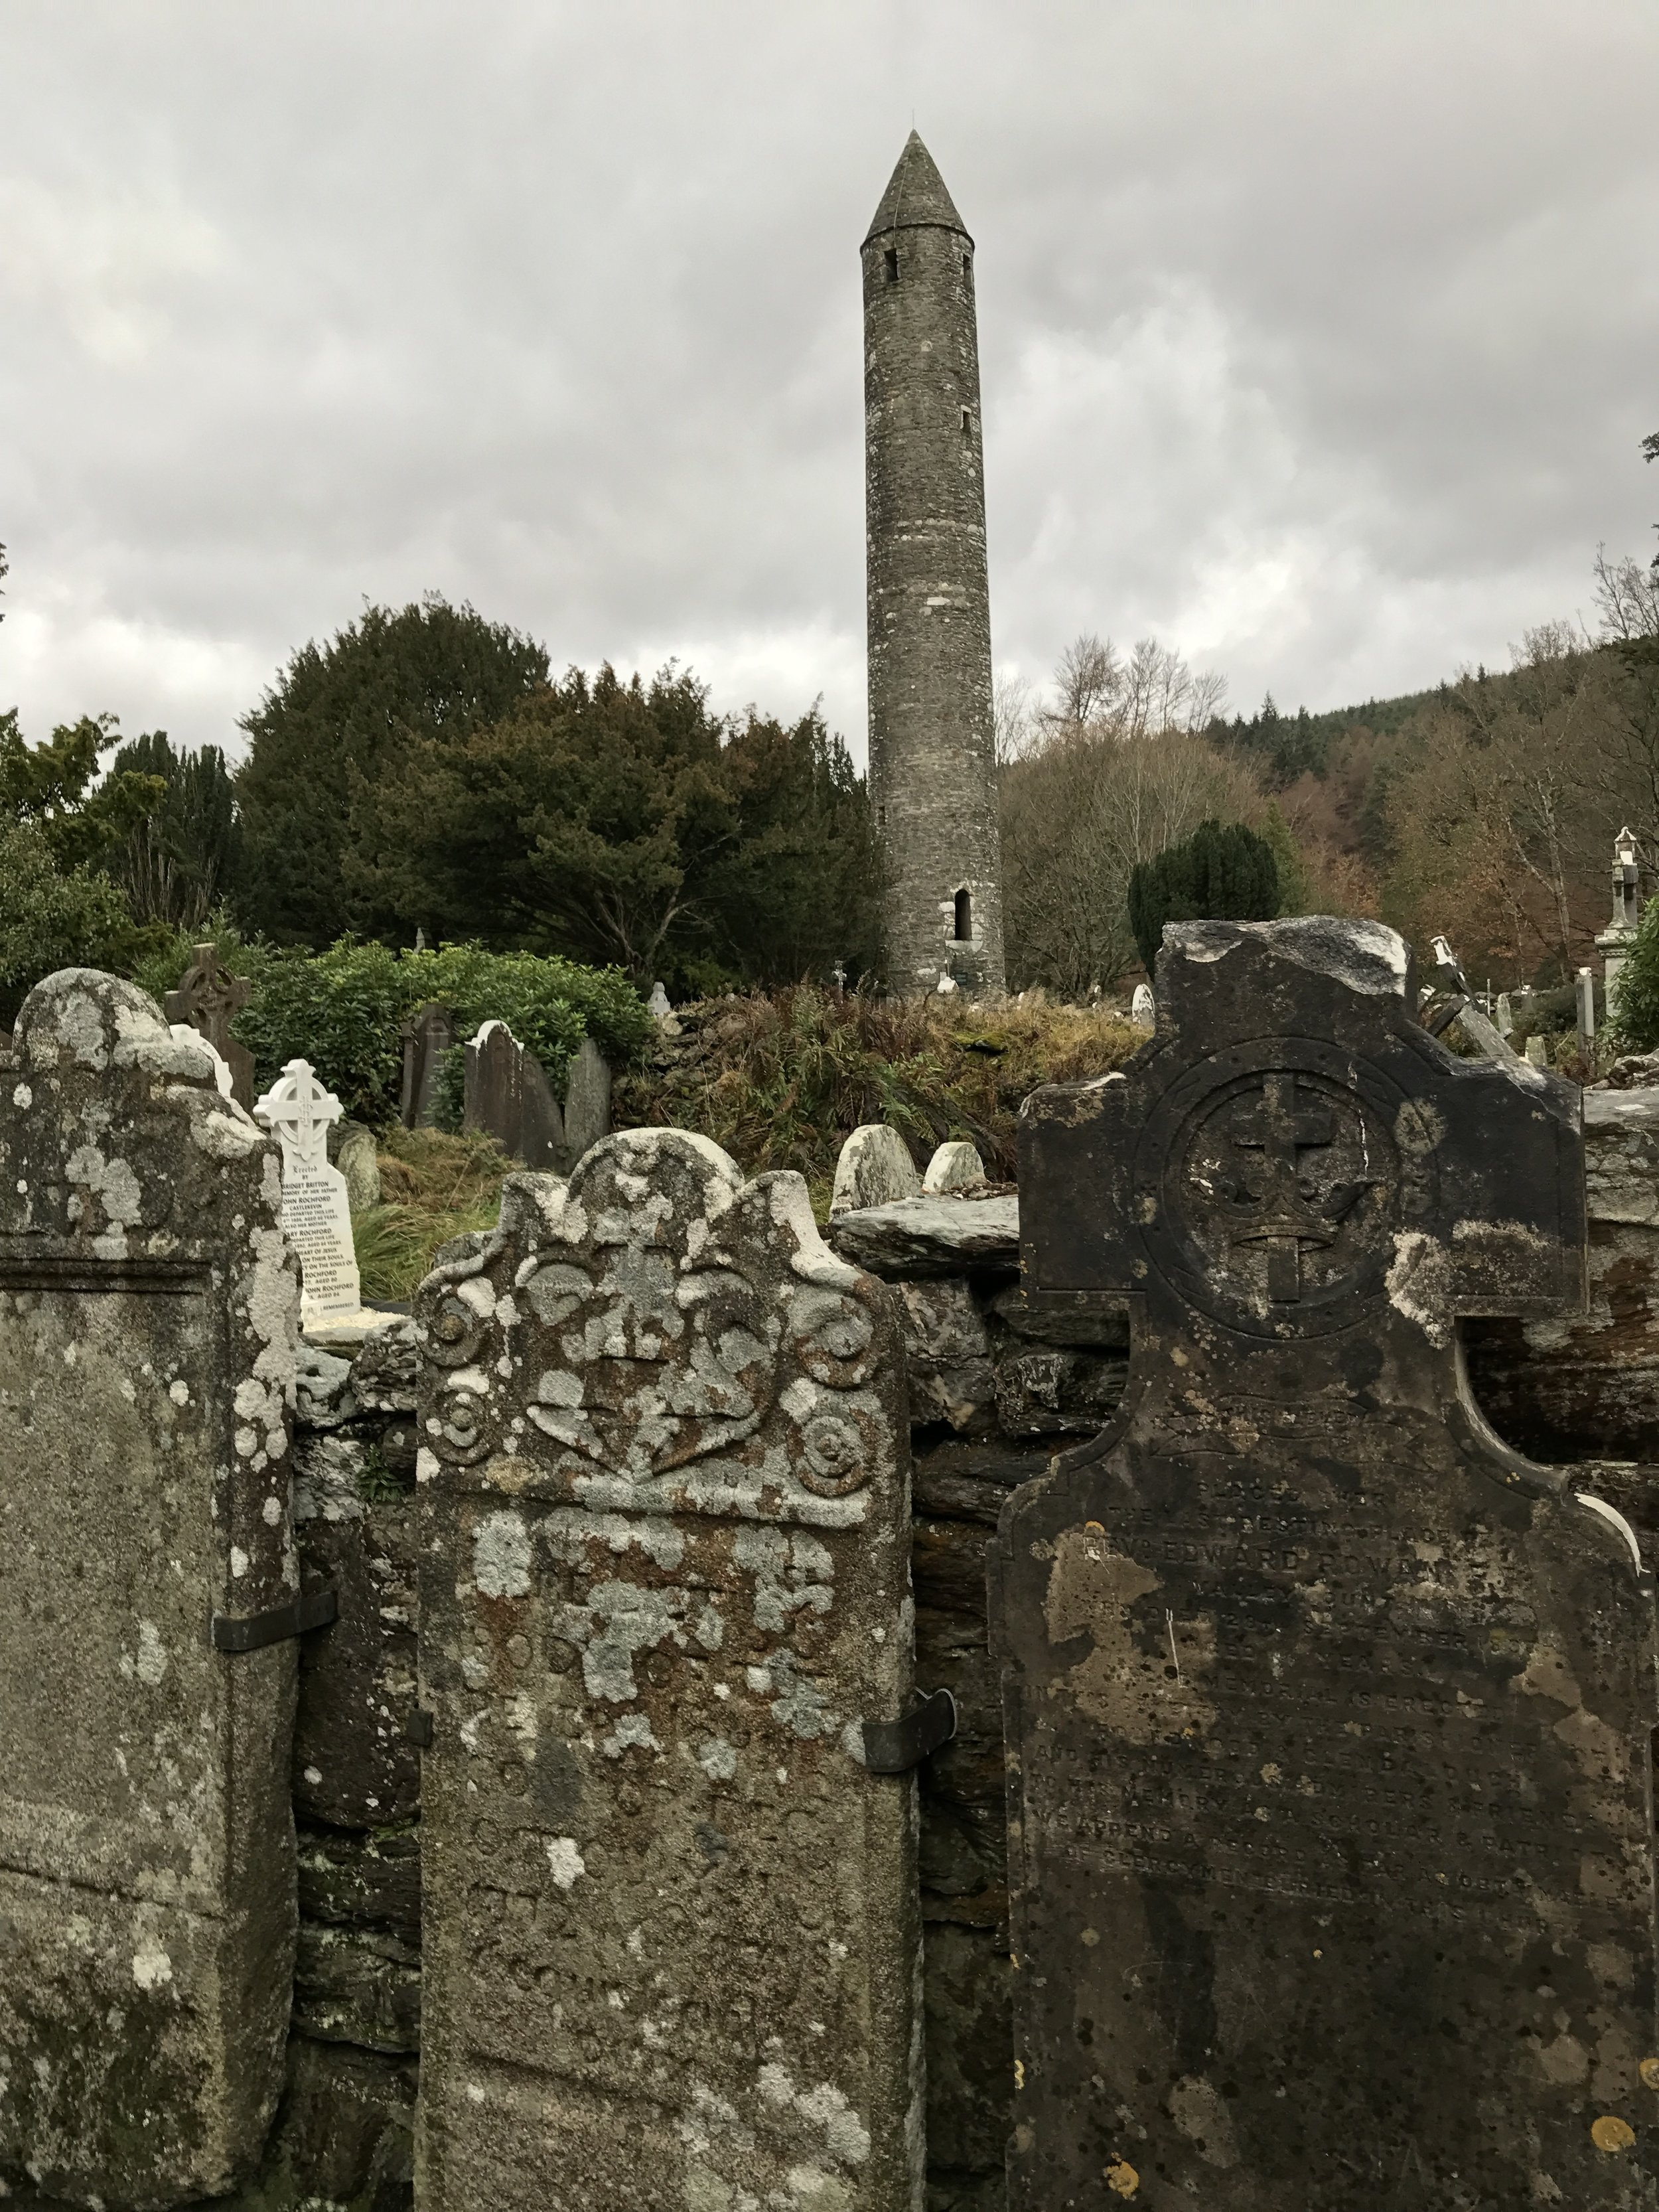 Despite the years, Glendalough remains a pilgrimage location for many people.